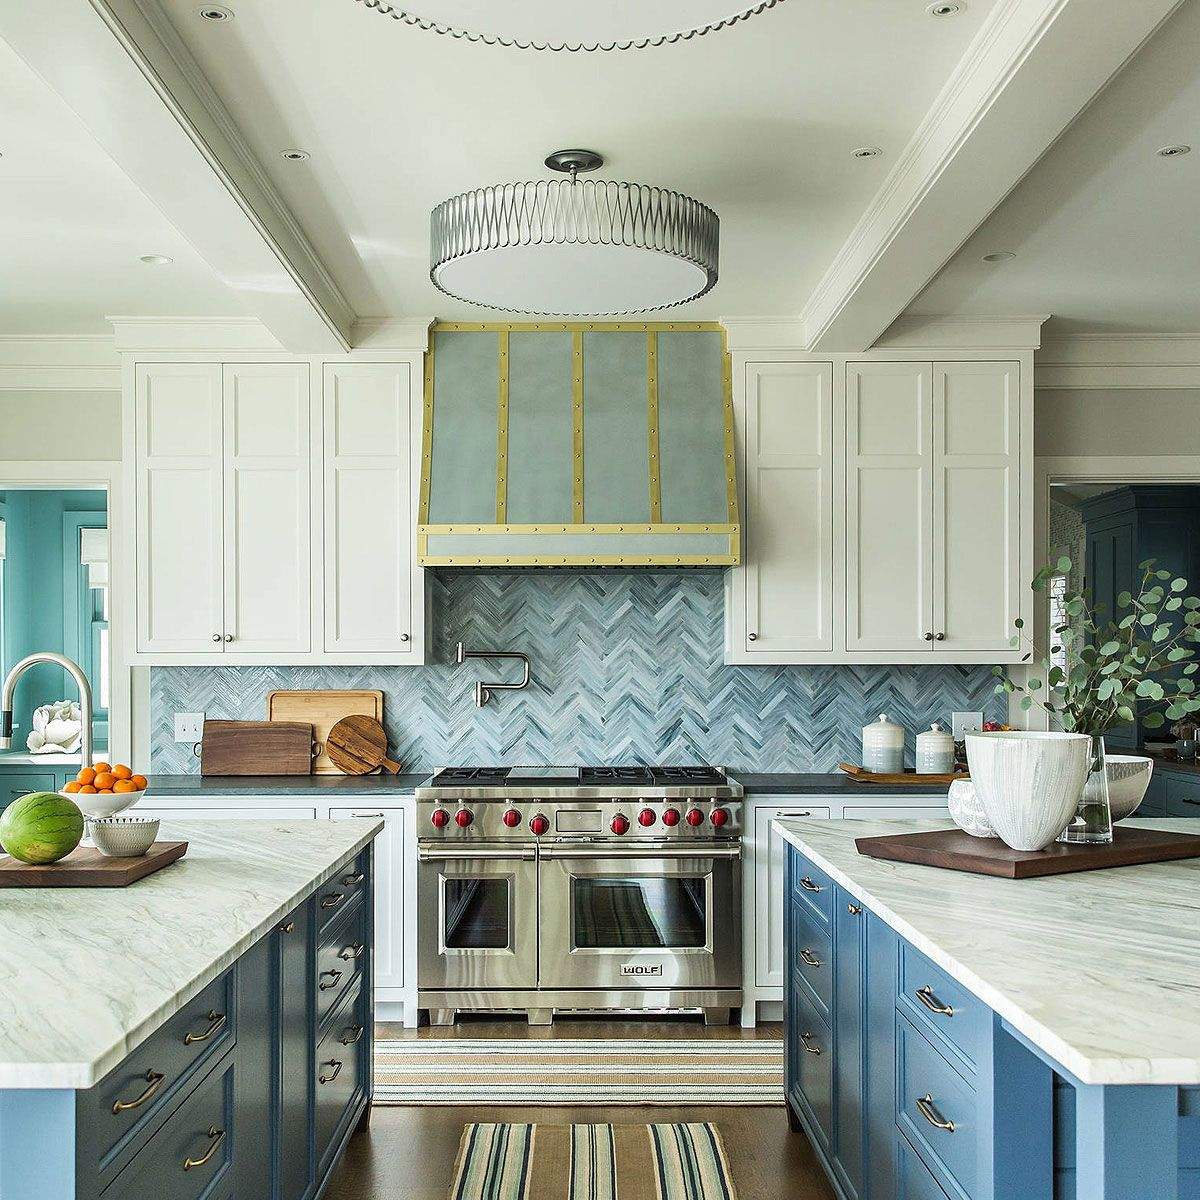 75 Blue Backsplash Ideas Navy Aqua Royal Or Coastal Blue Design In 2020 Blue Backsplash Blue Tile Backsplash Traditional Kitchen Backsplash